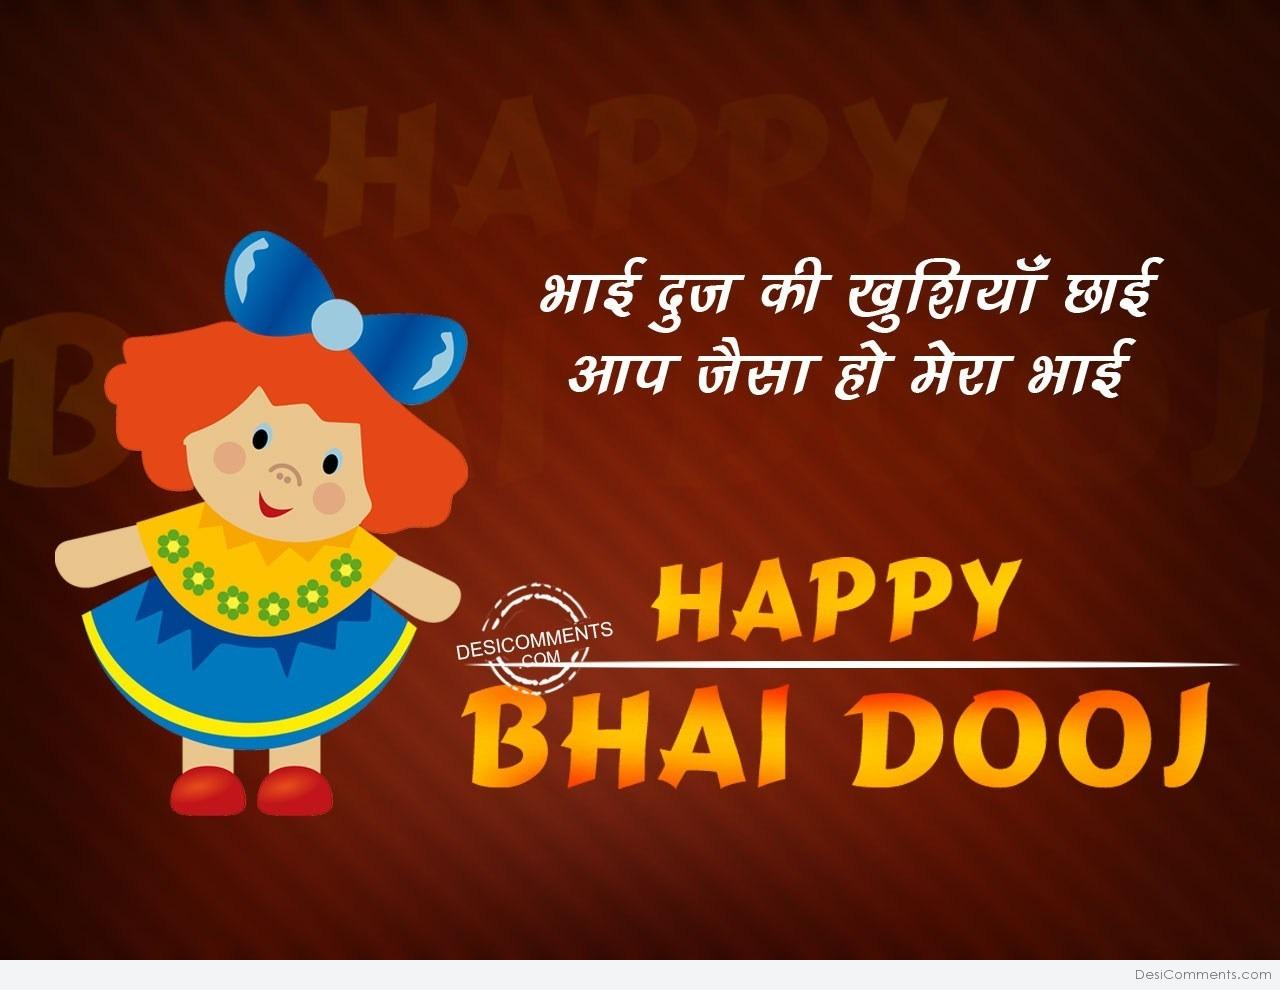 50 most beautiful bhai dooj wish pictures and images happy bhai dooj wishes for brother from sister kristyandbryce Images